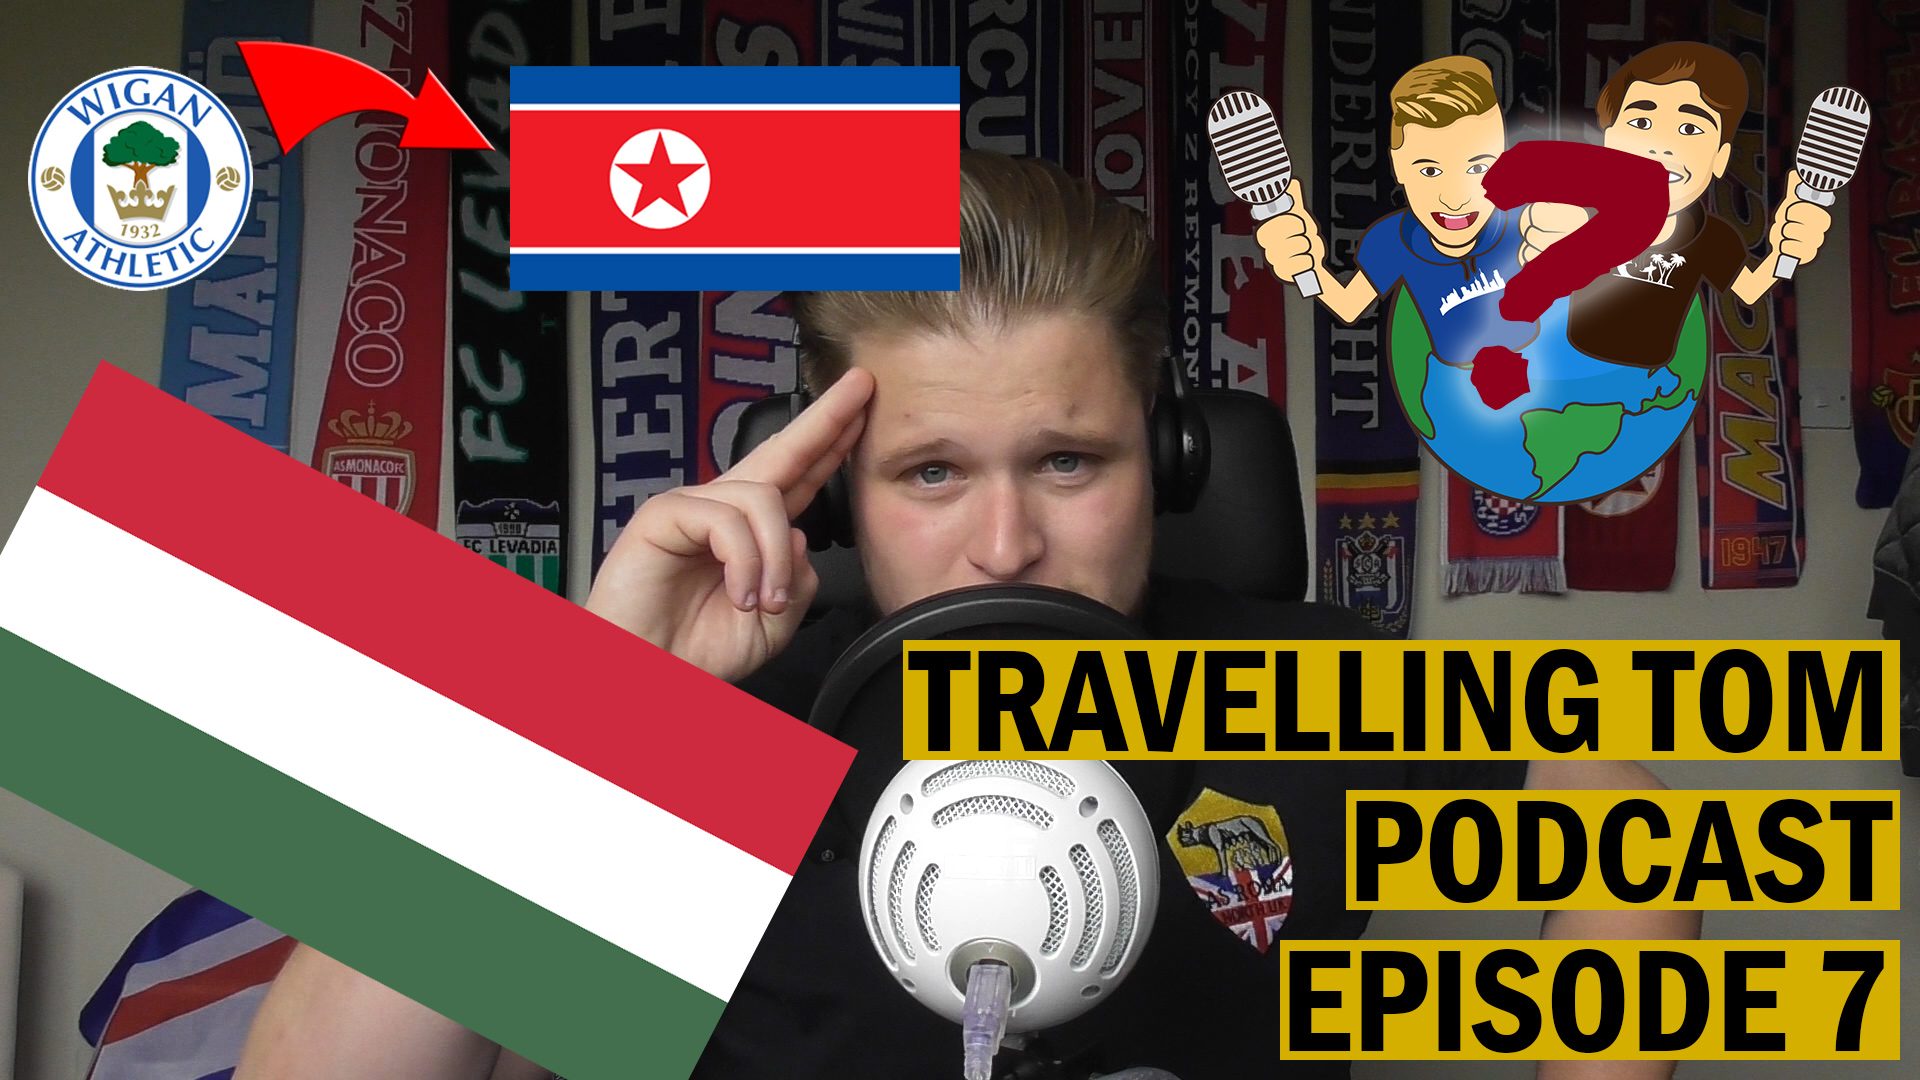 Travel-Travelling-Tom-Podcast-7-Update